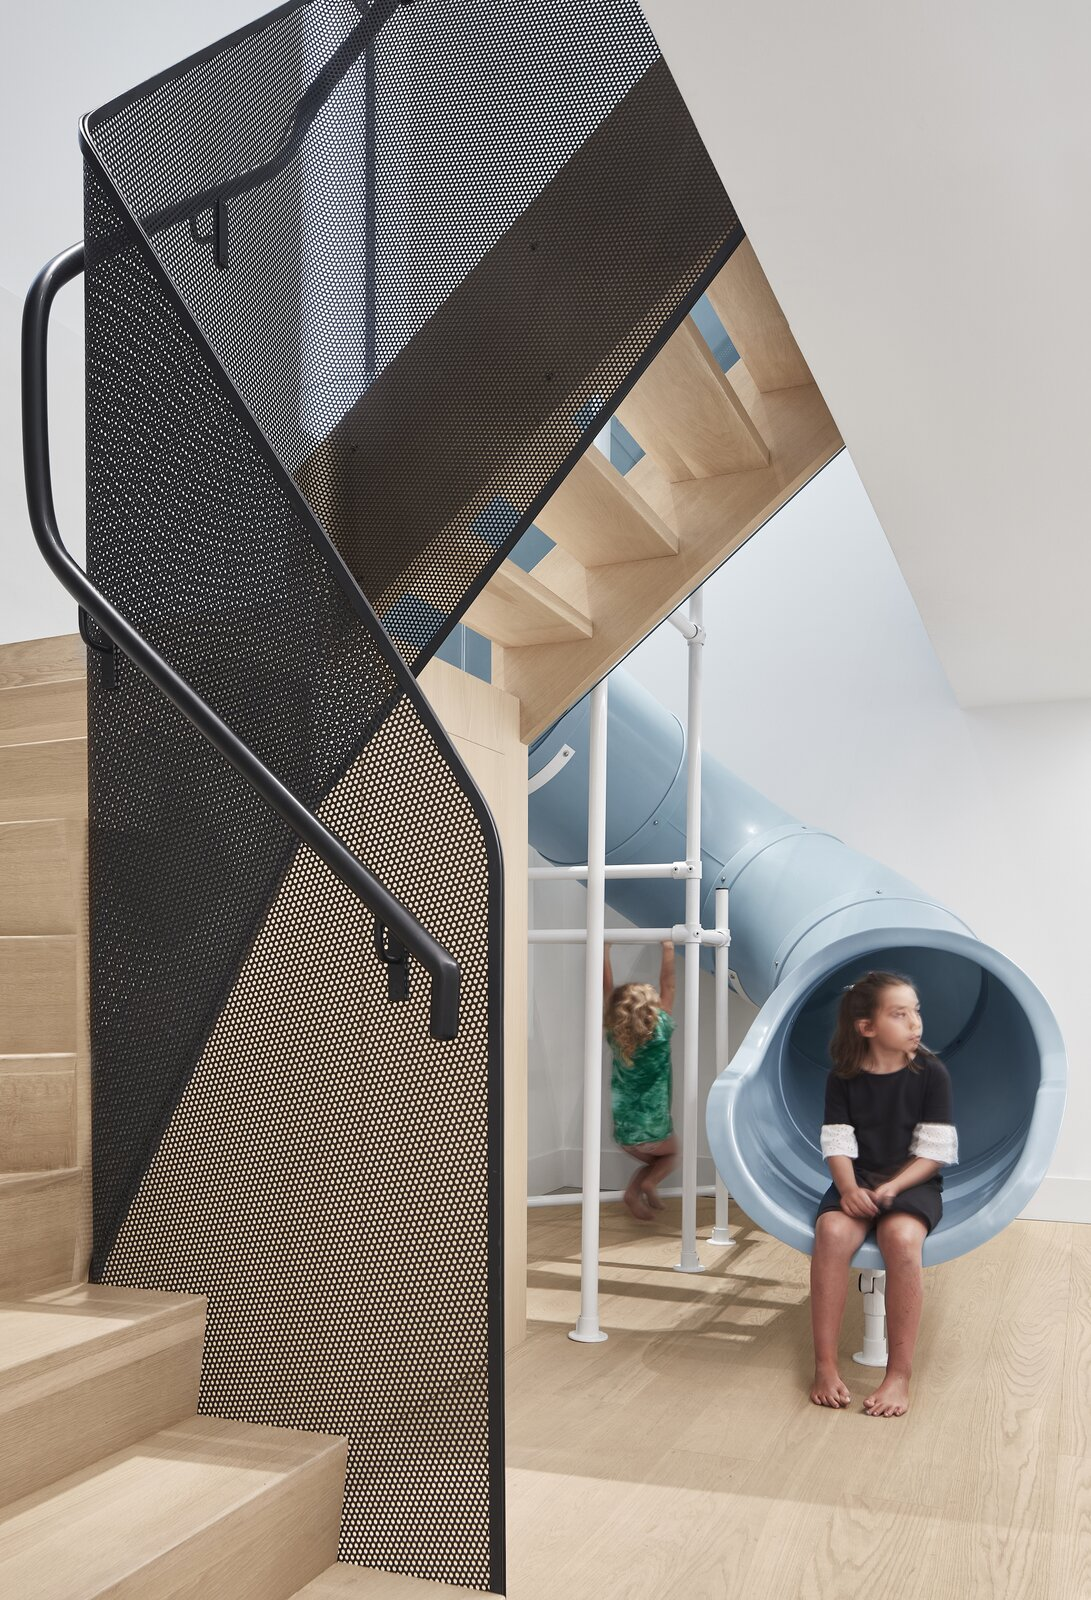 Stair and slide of Walker Residence by Reflect Architecture.